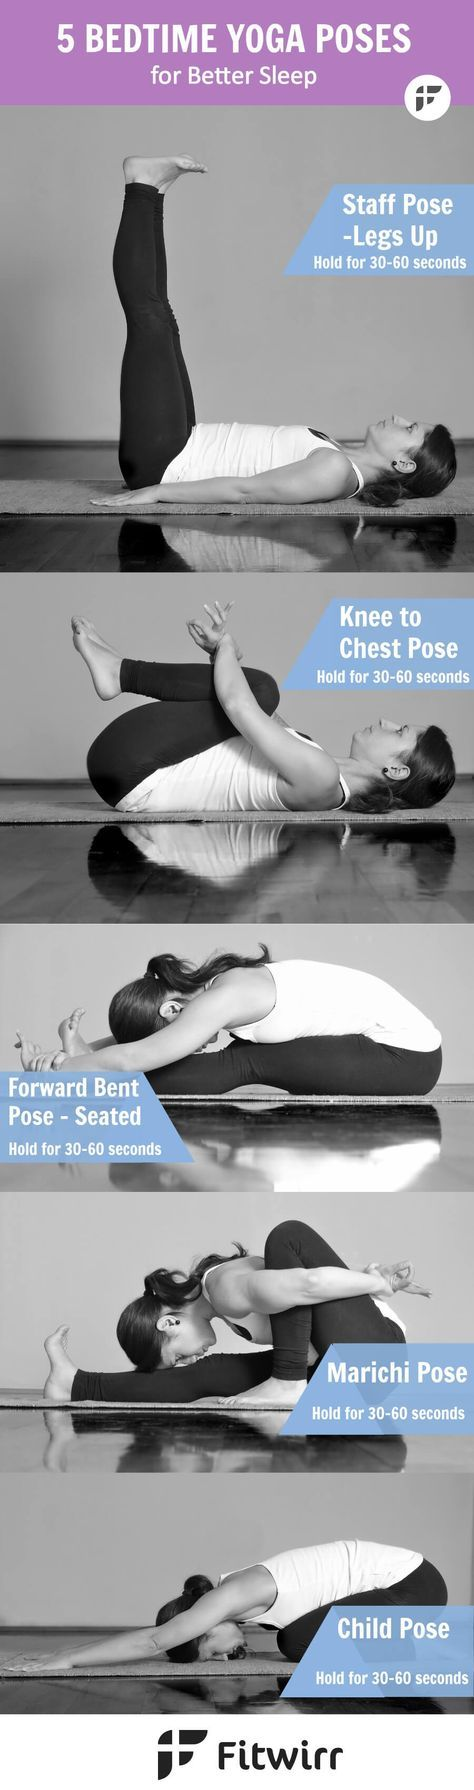 Sometimes what your body and mind need the most is to feel calm and relaxed, specially after a hard day at work. Here are five bedtime Yoga poses that can help you relax, stretch, calm and sleep better.